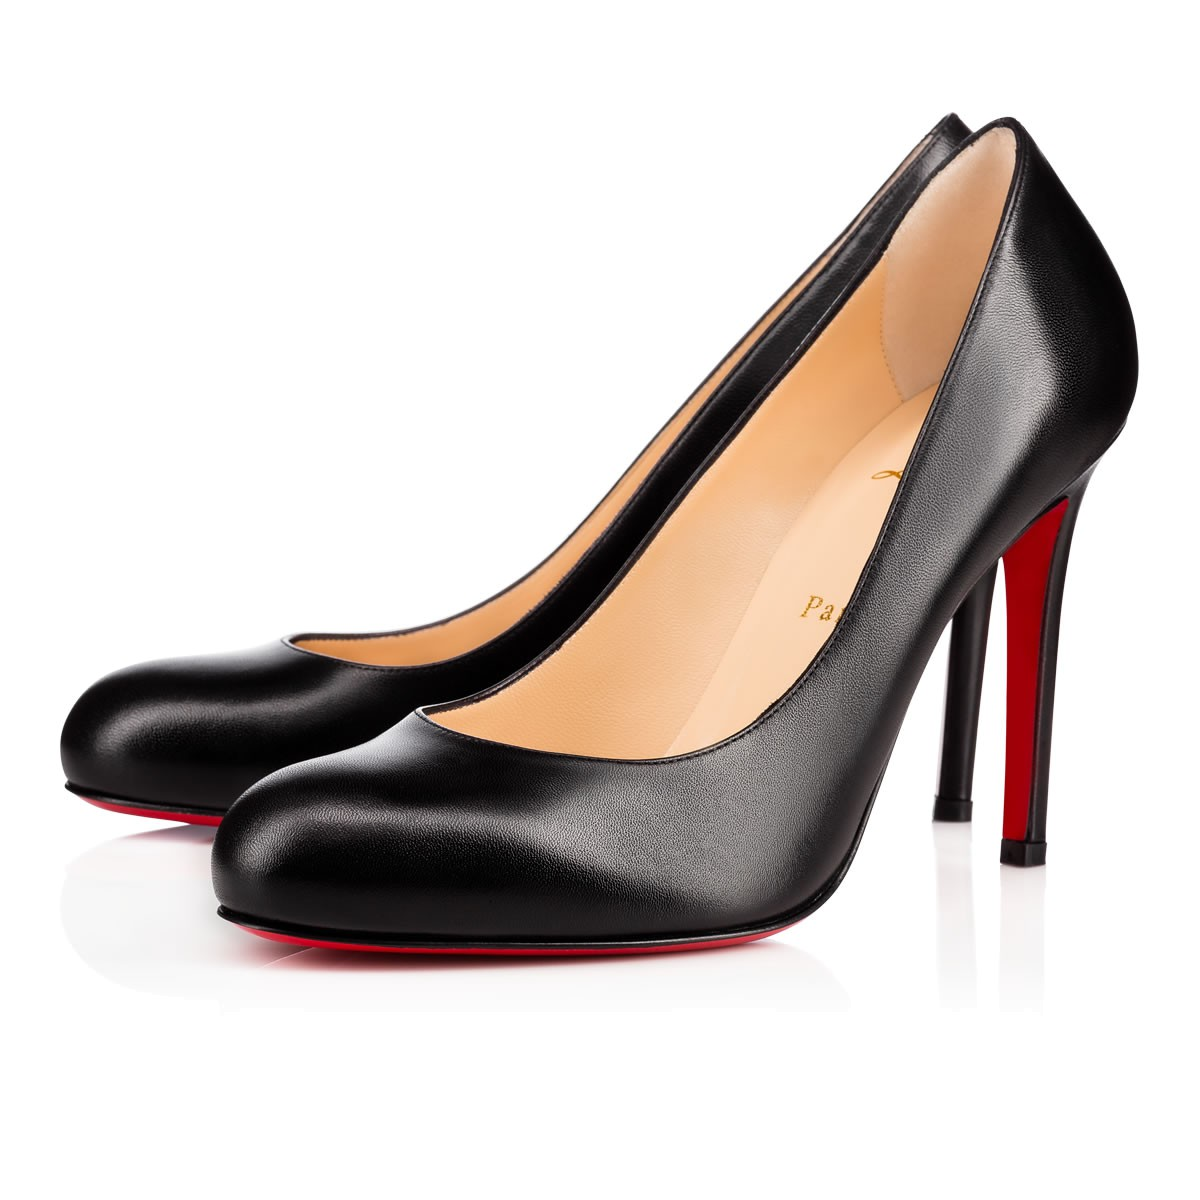 louboutin simple pump patent 100mm